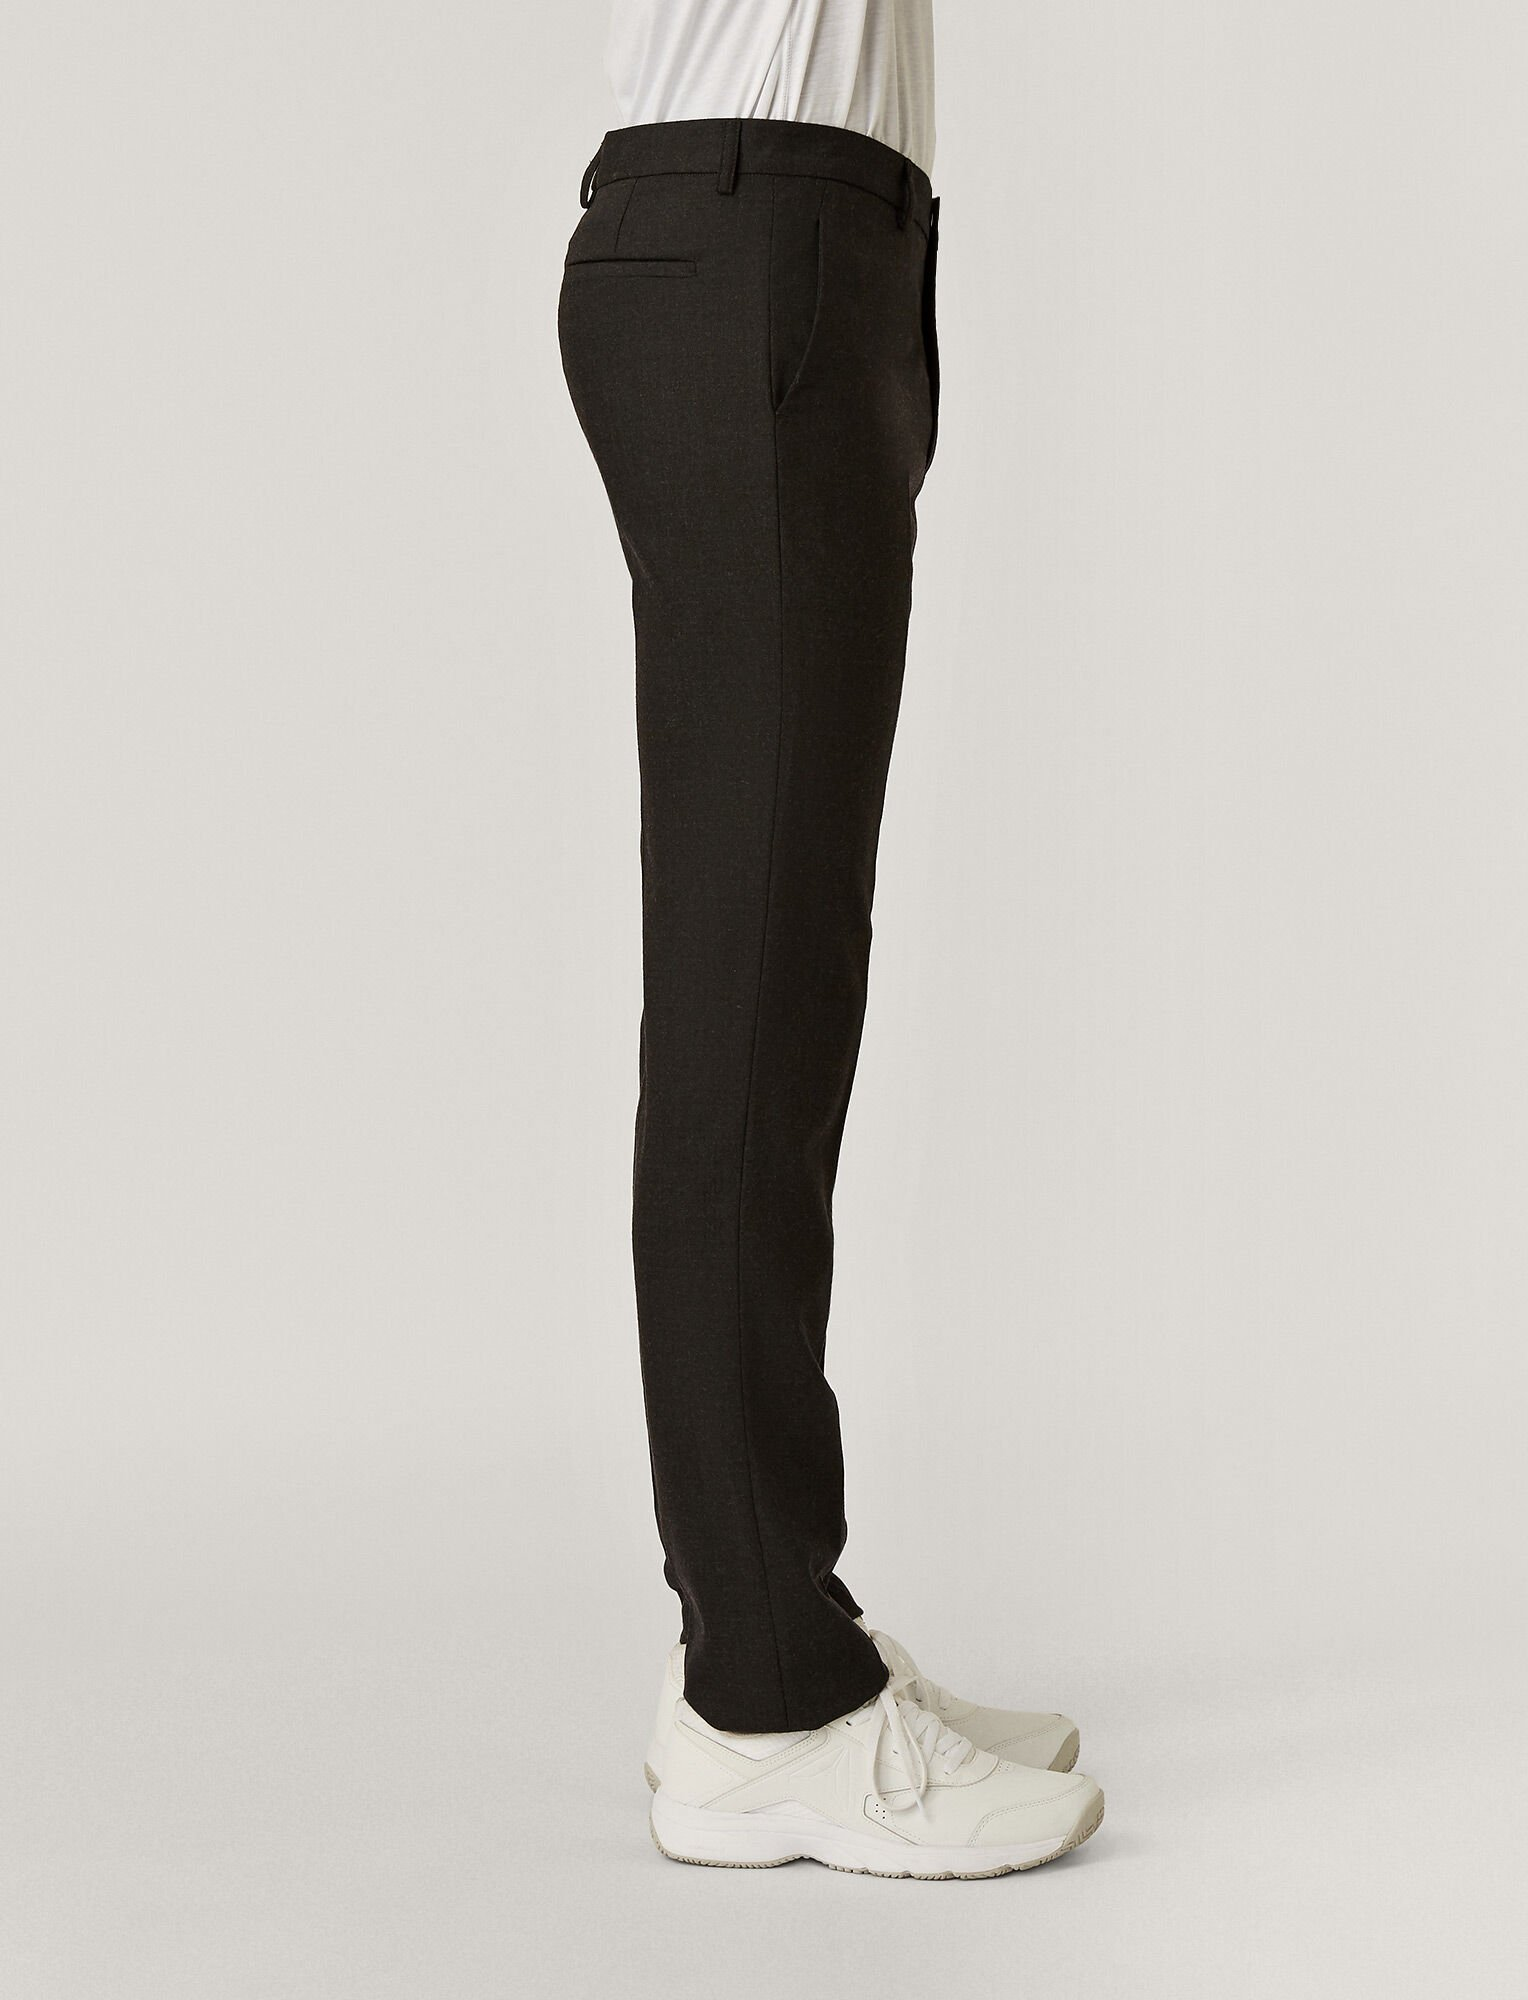 Joseph, Jack Flannel Stretch Trousers, in CHARCOAL